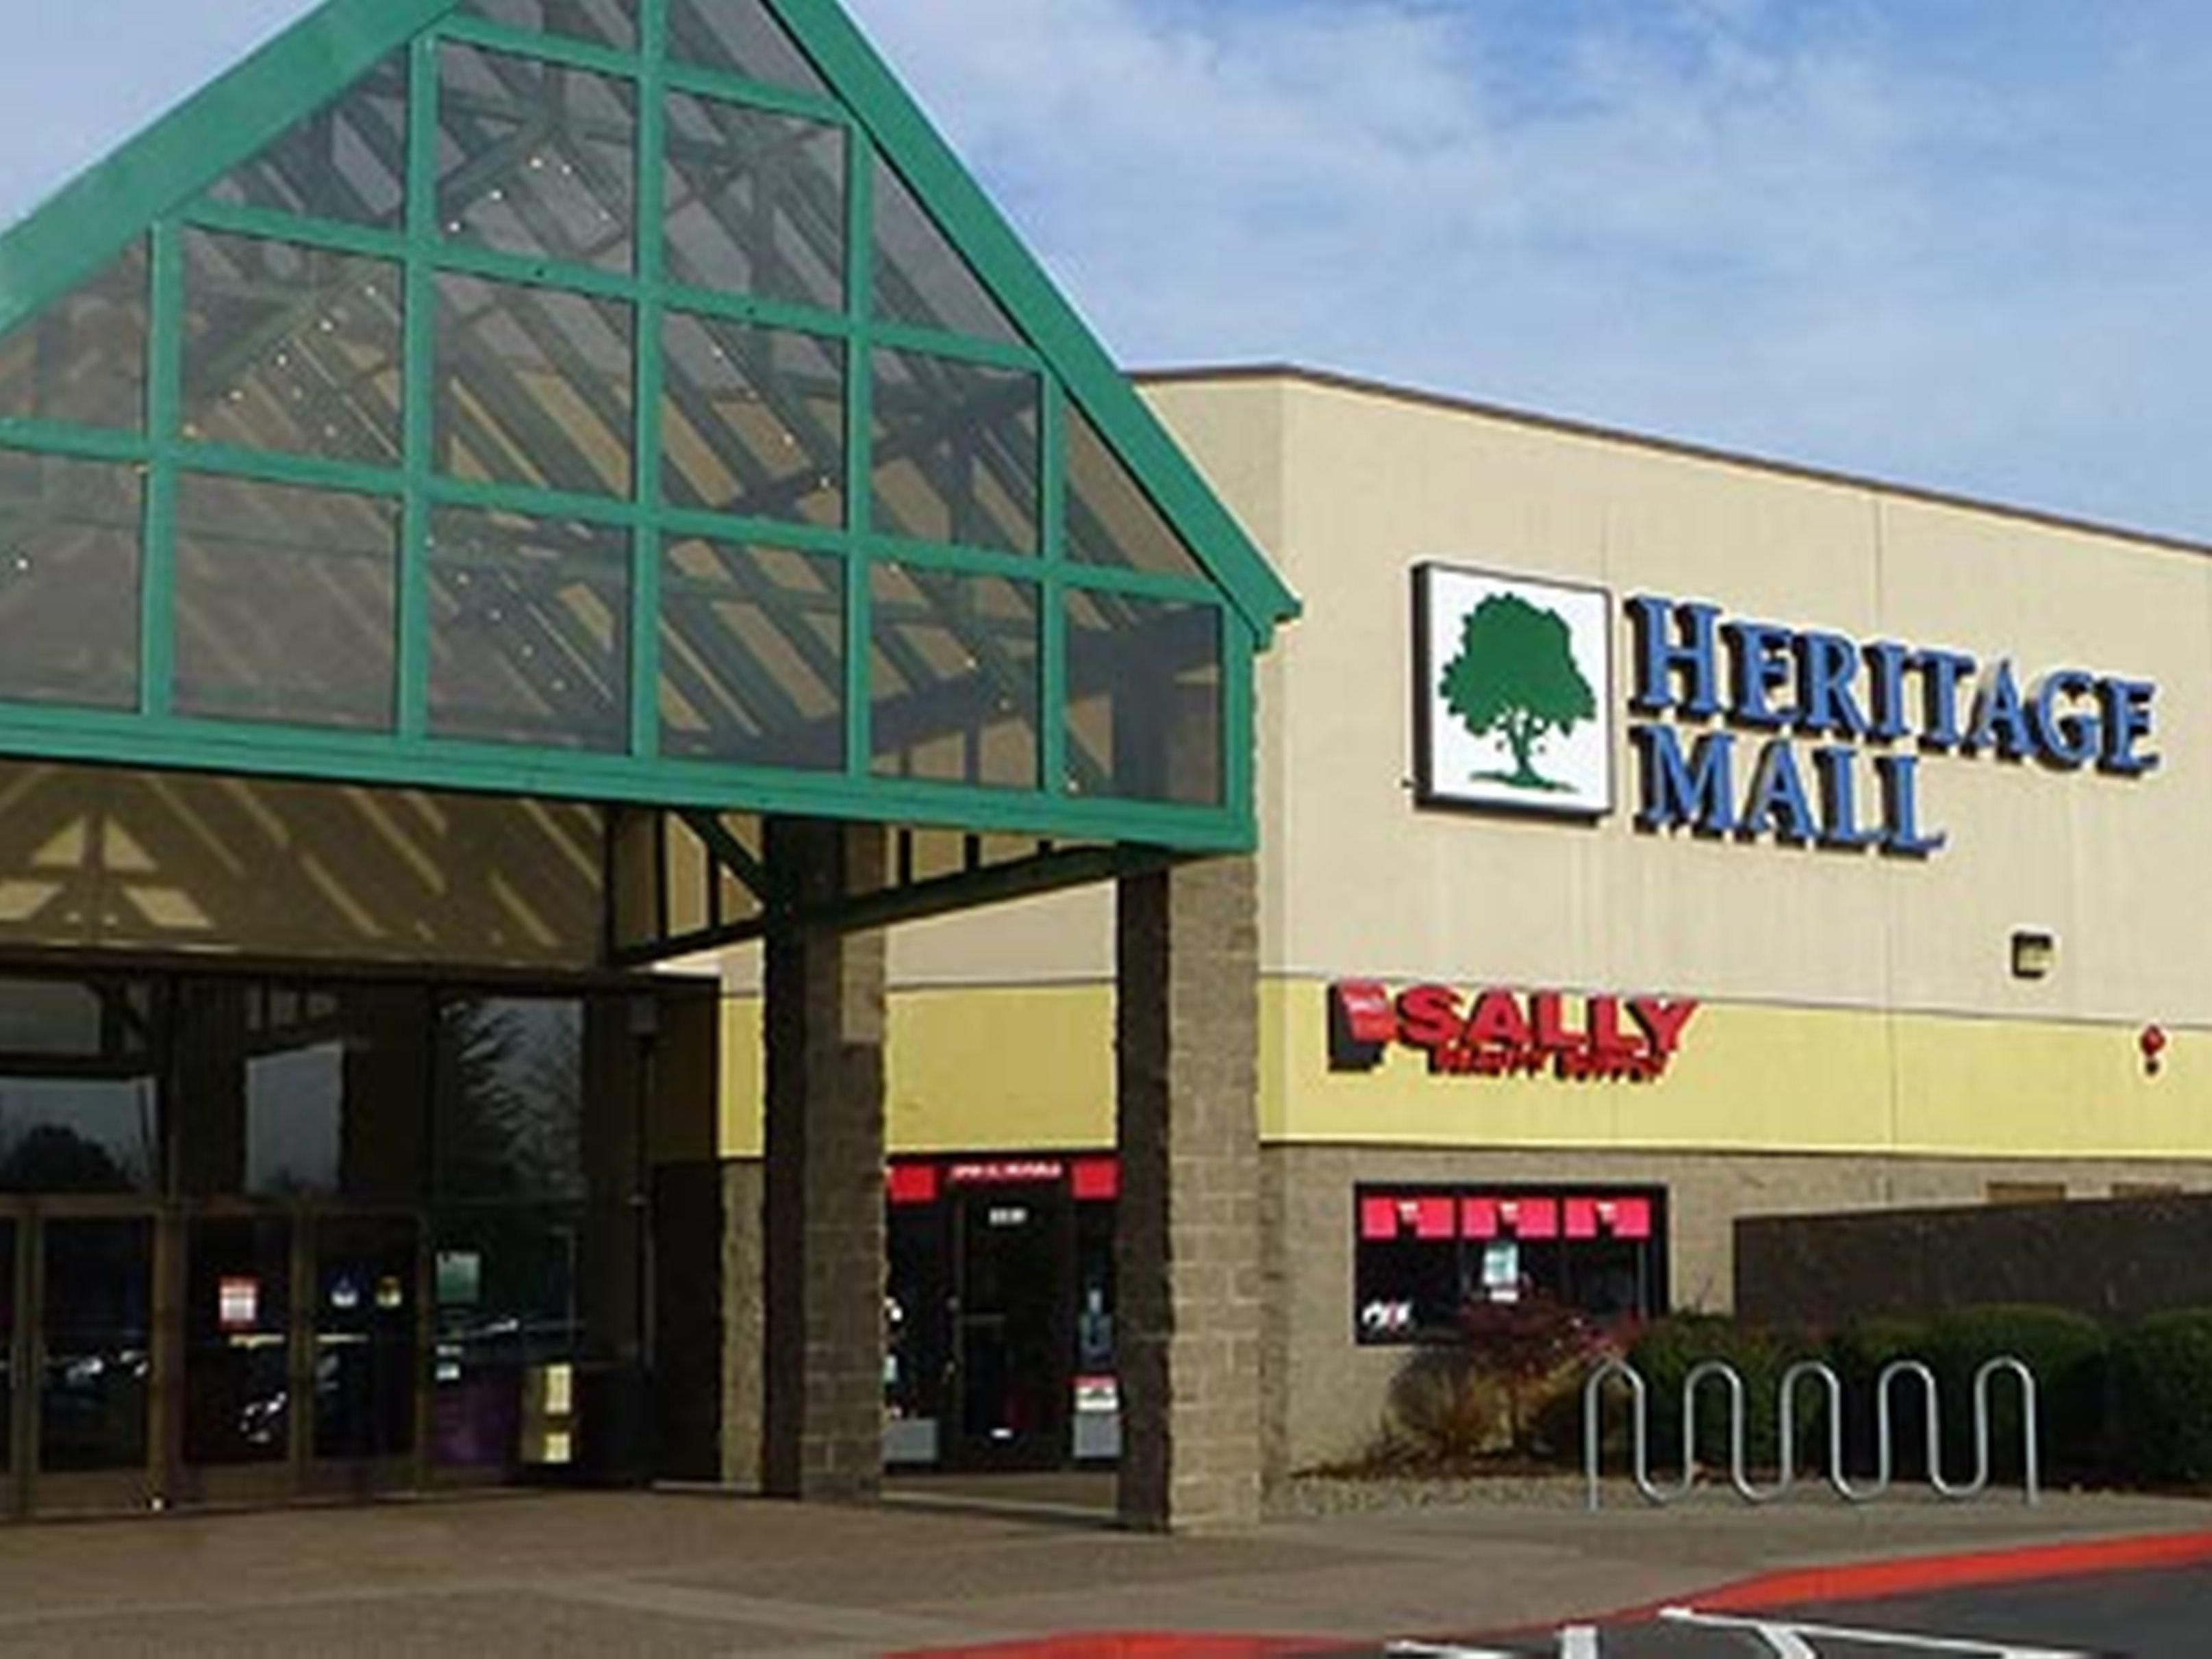 Heritage Mall less than 5 miles has Target, Hobby Lobby & more